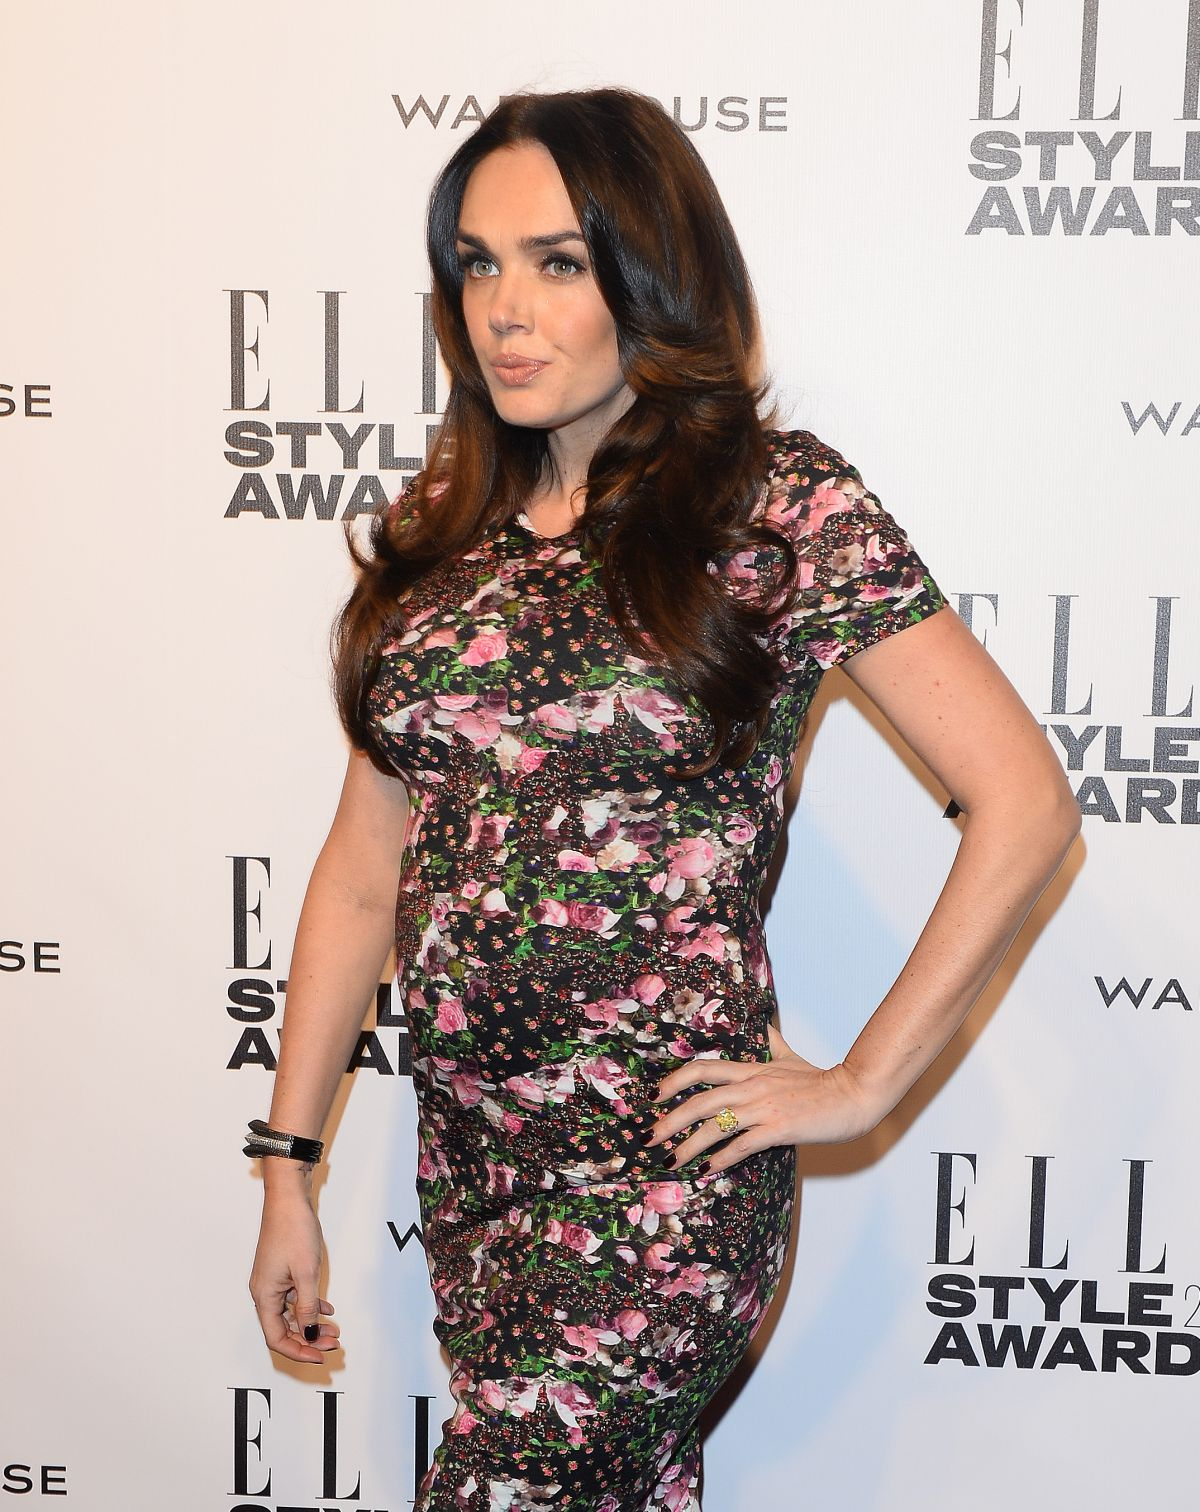 TAMARA ECCLESTONE at 2014 Elle Style Awards in London